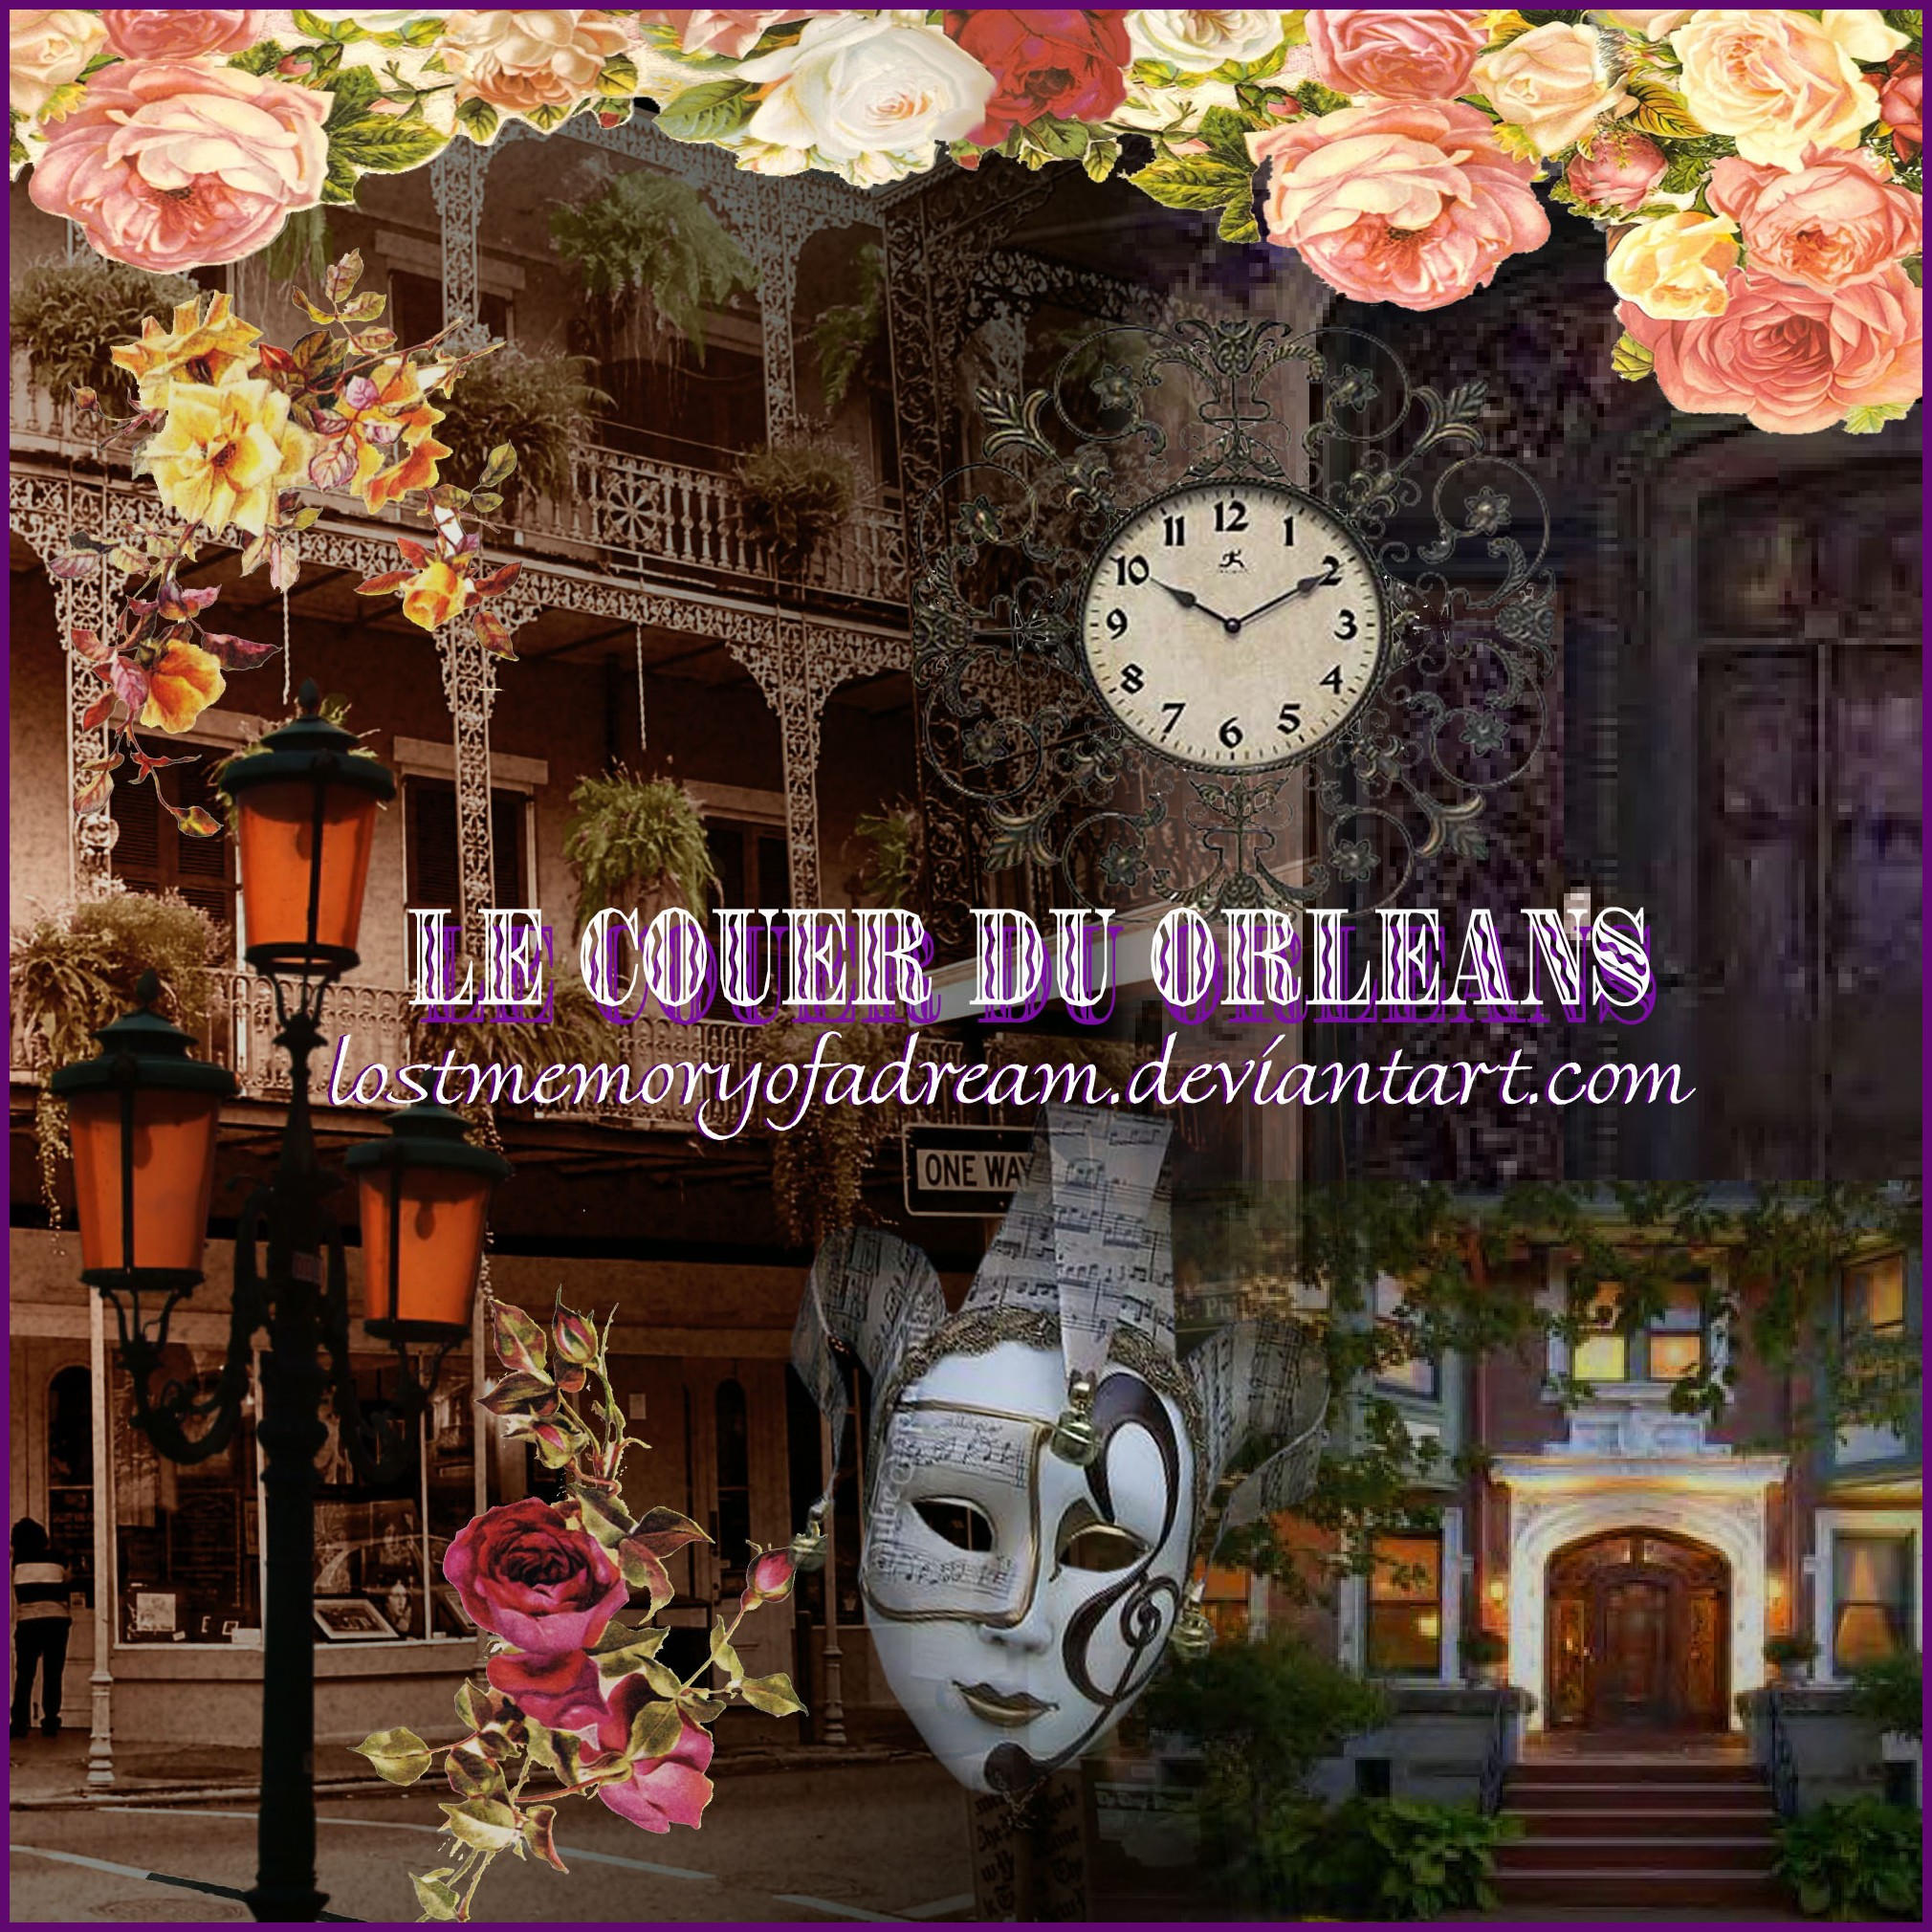 Le Couer du Orleans Brushes by LostMemoryOfADream